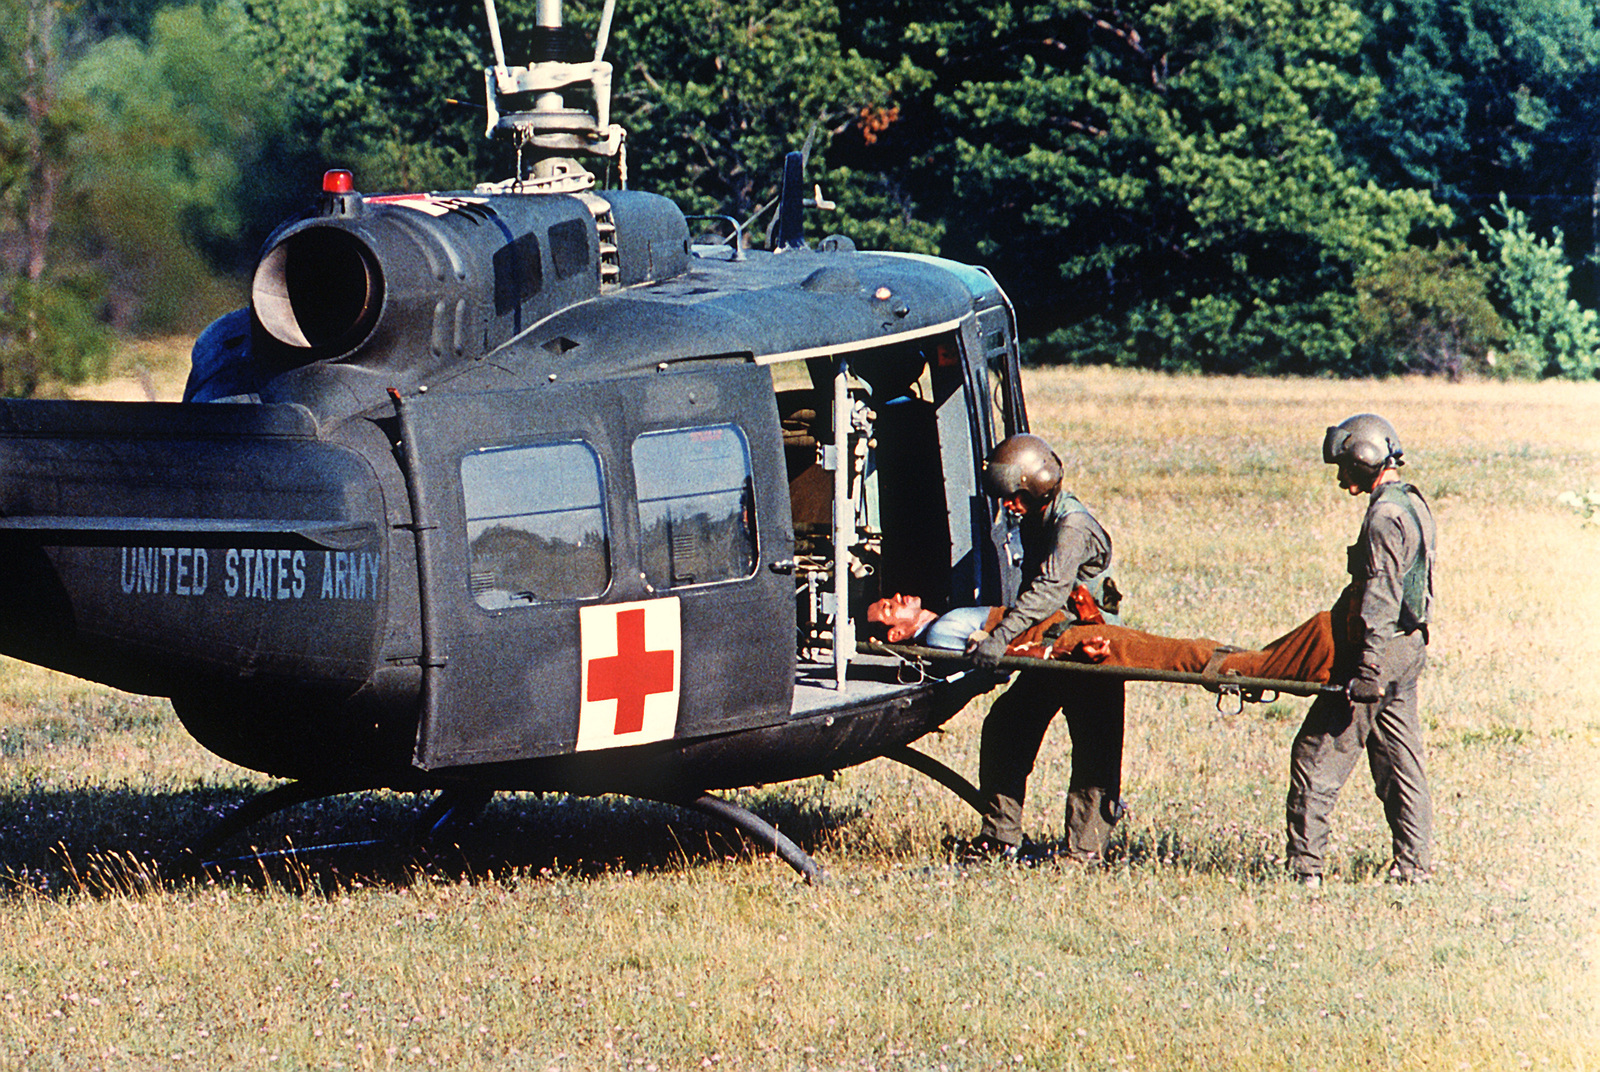 A medical evacuation (MEDEVAC) flight crew loads a patient on a stretcher aboard a UH-1 Iroquois helicopter for evacuation to a medical facility during a simulation exercise